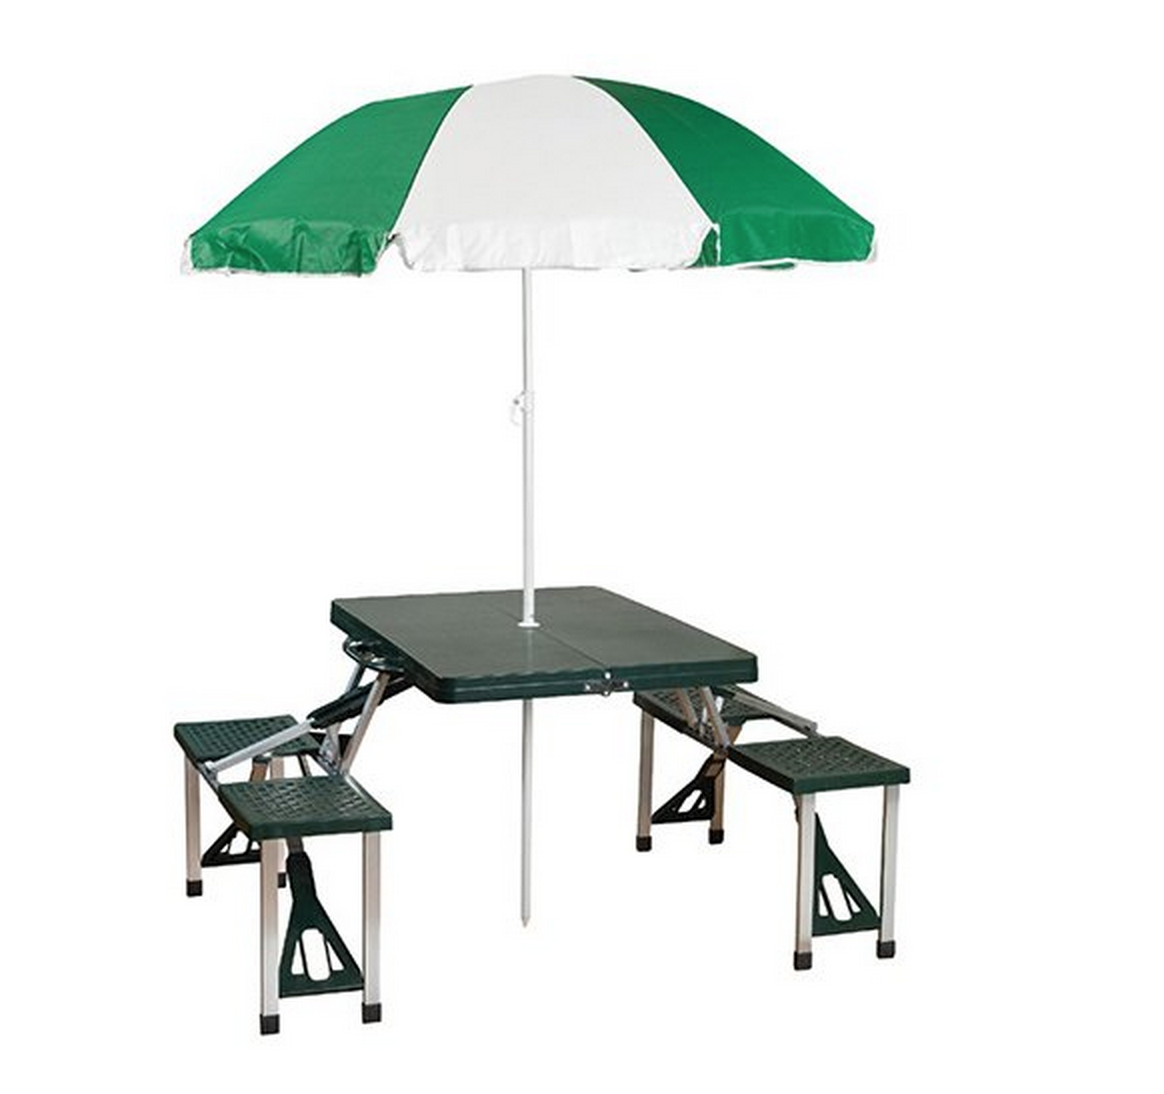 Stansport Picnic Table and Umbrella Combo Pack Only $36.98 (Reg. $69.99!) – Lowest Price!